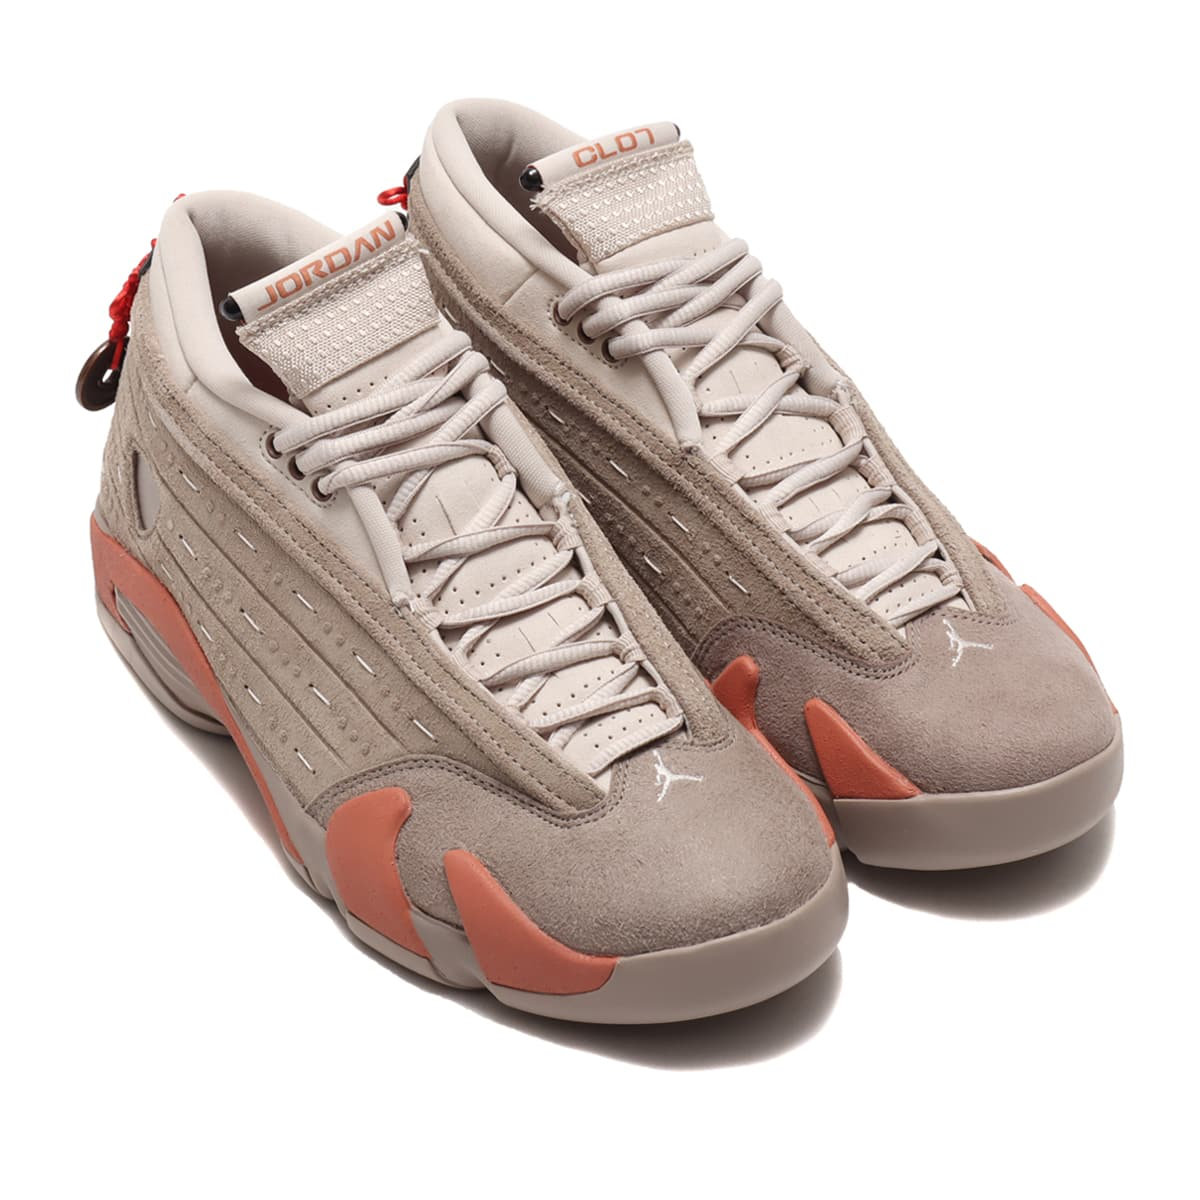 JORDAN BRAND AIR JORDAN 14 LOW SP SEPIA STONE/TERRA BLUSH-DESERT SAND 21SP-S_photo_large